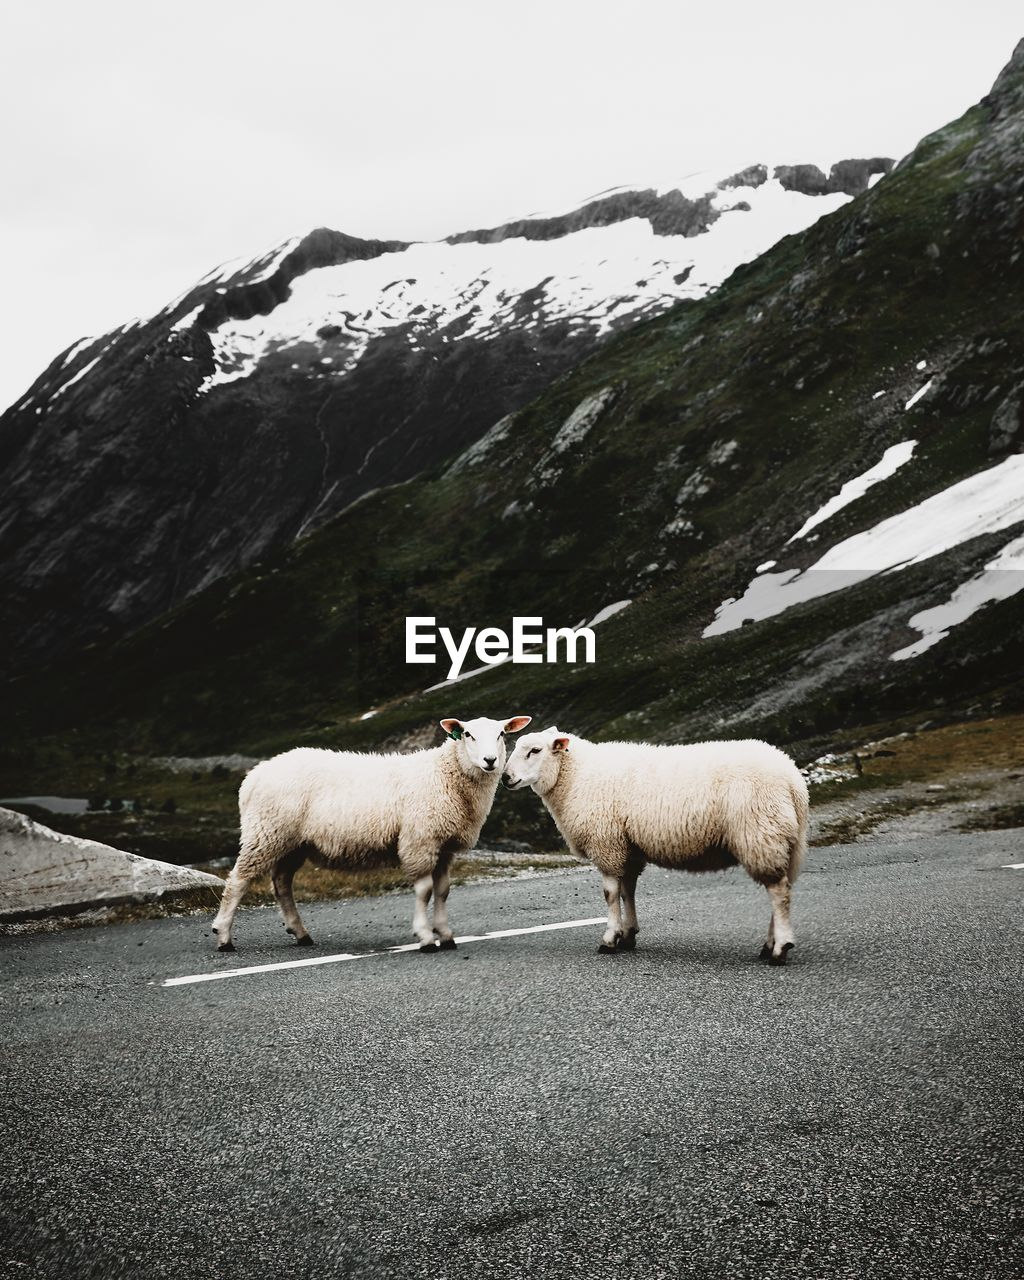 Sheep Standing On Road Against Mountains